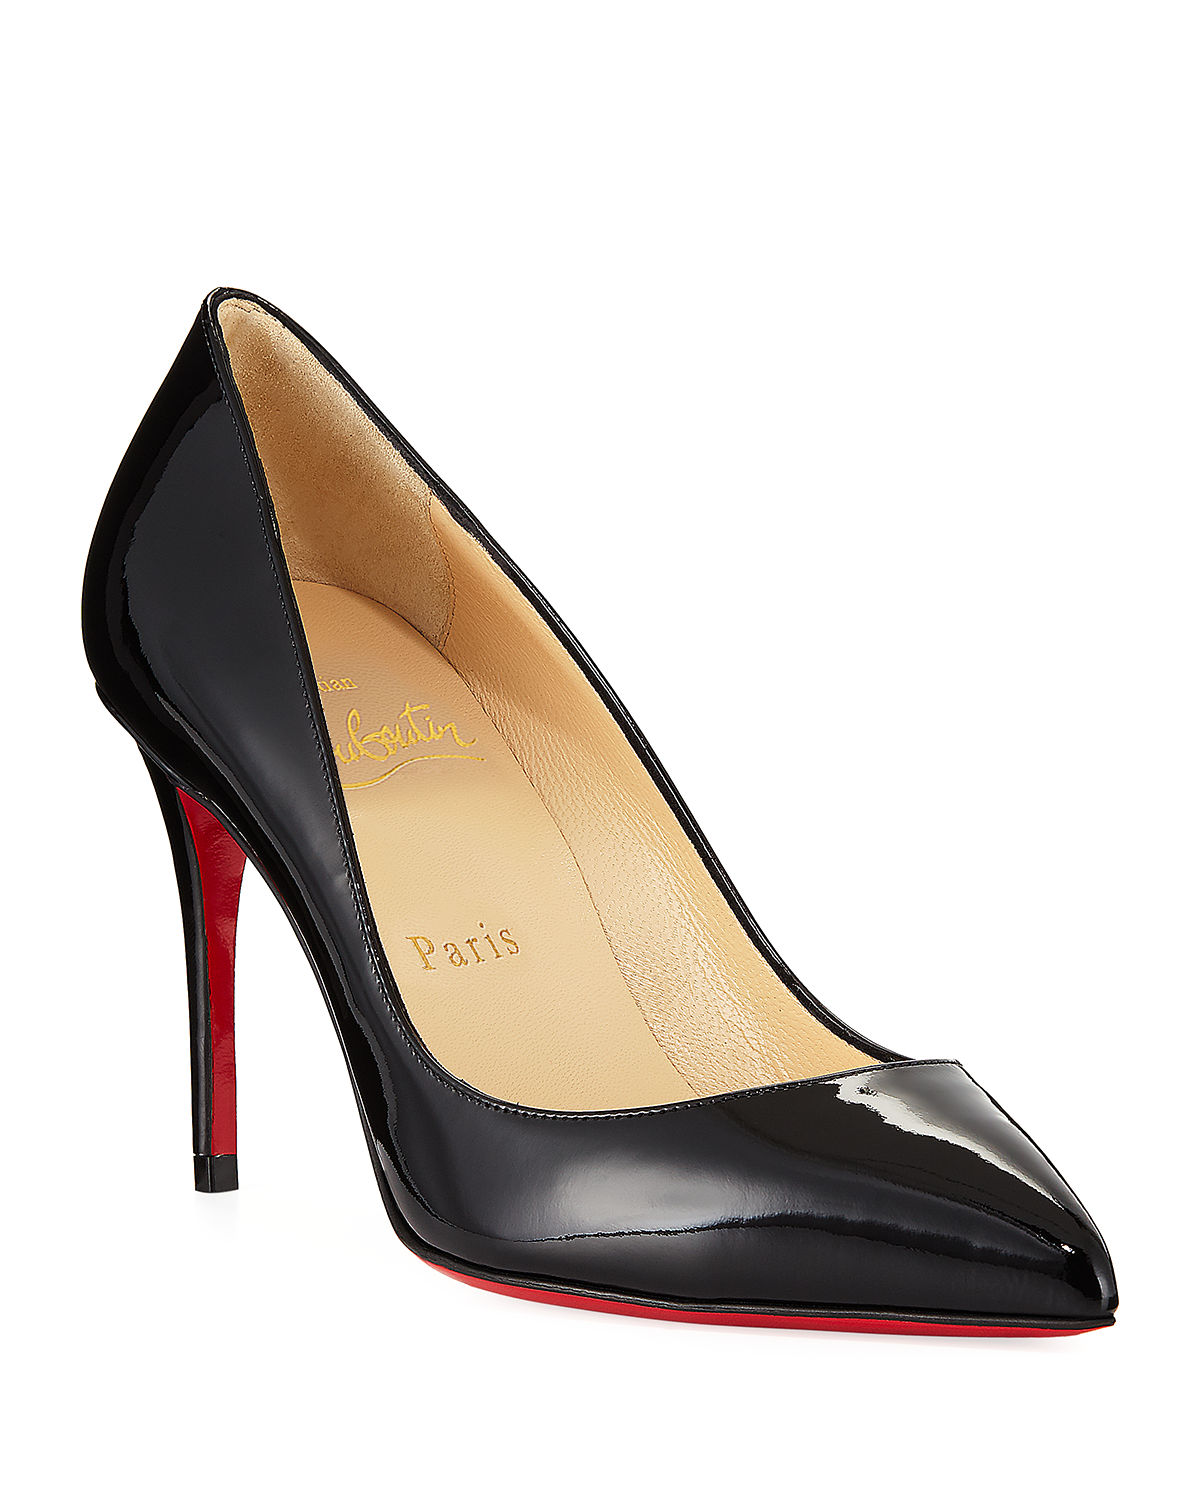 605730dd6e7 Christian Louboutin Pigalle Follies 85mm Patent Red Sole Pump ...